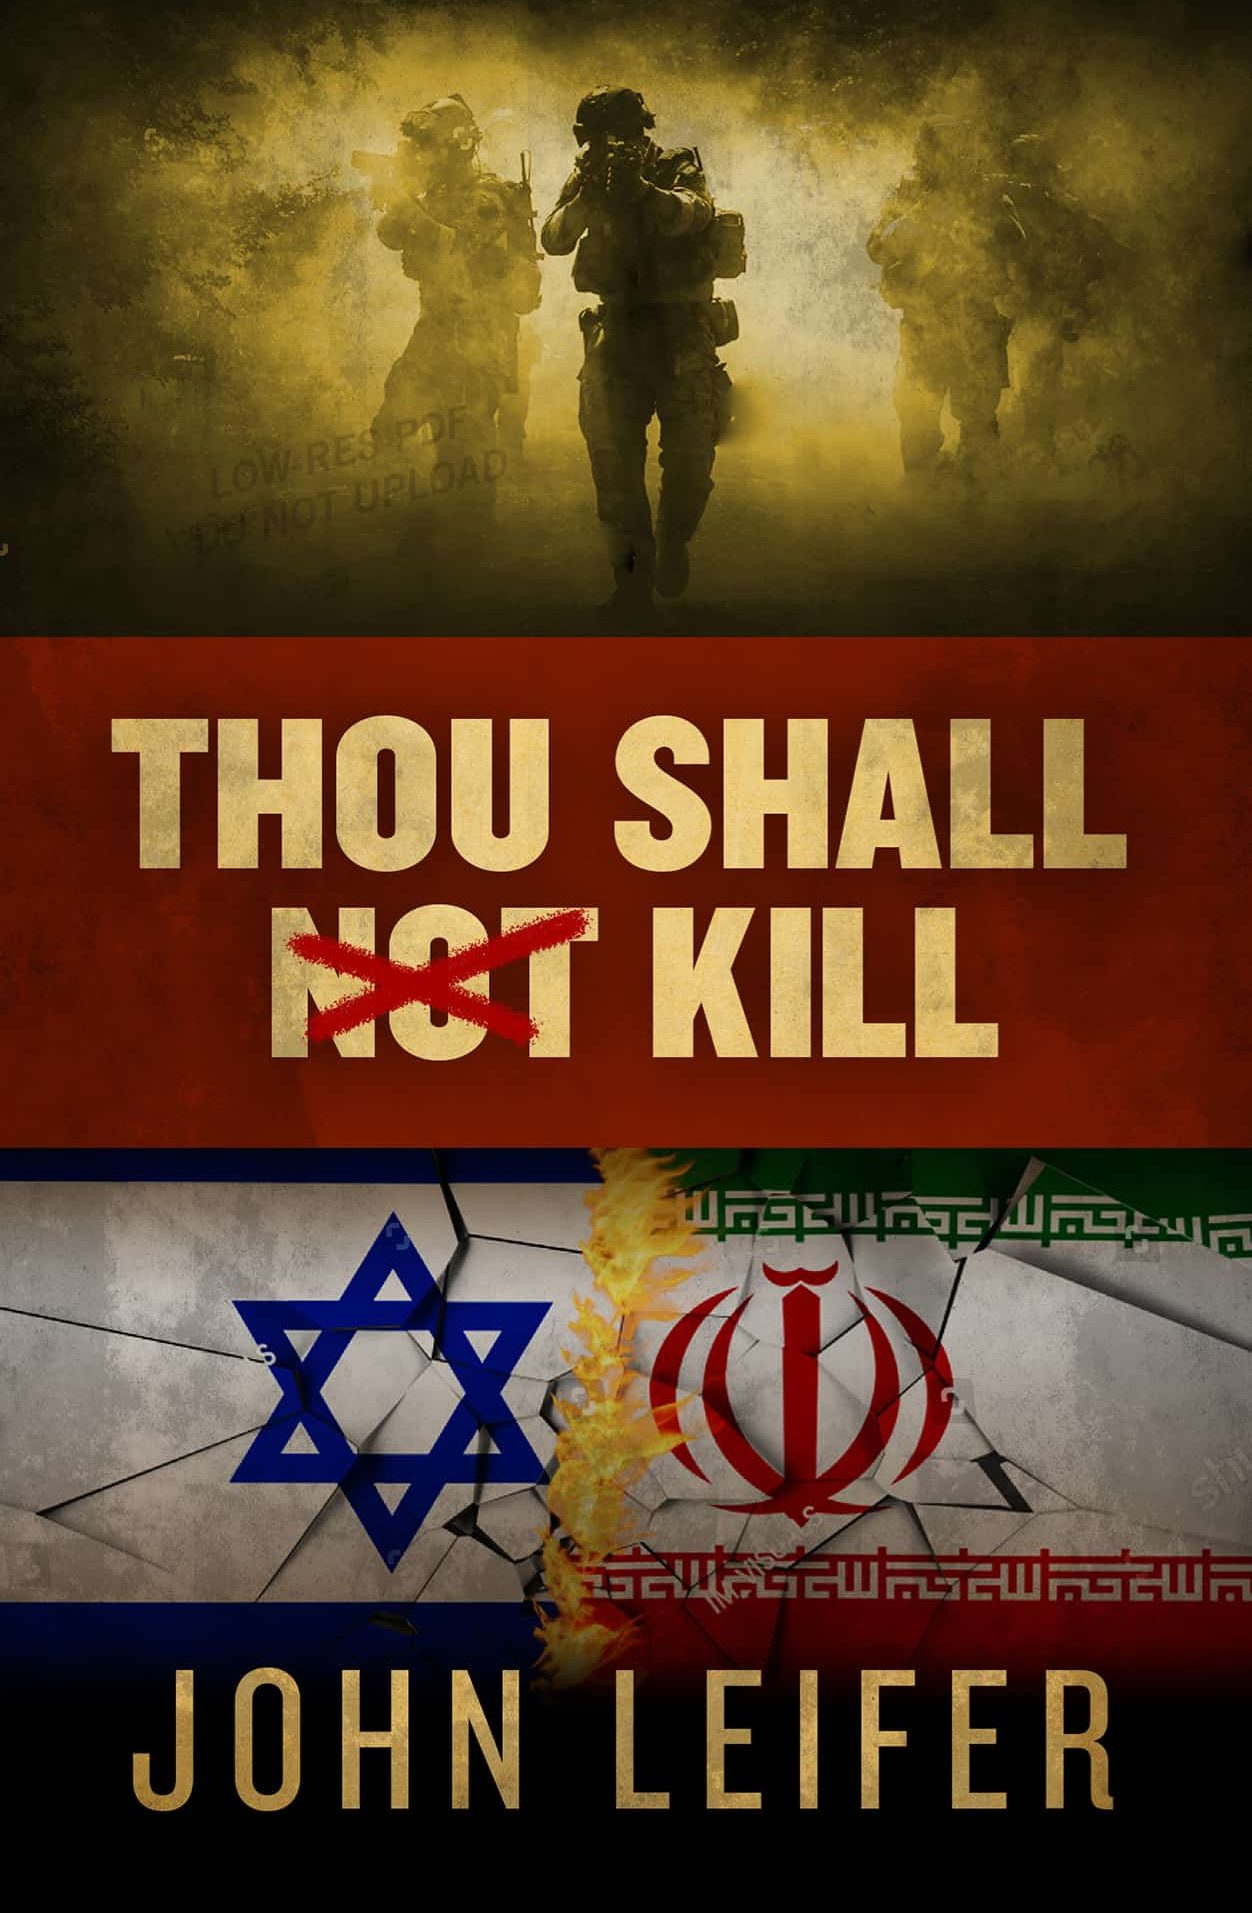 thou shall not kill 2019 by john leifer e1557171479886 - Terminal